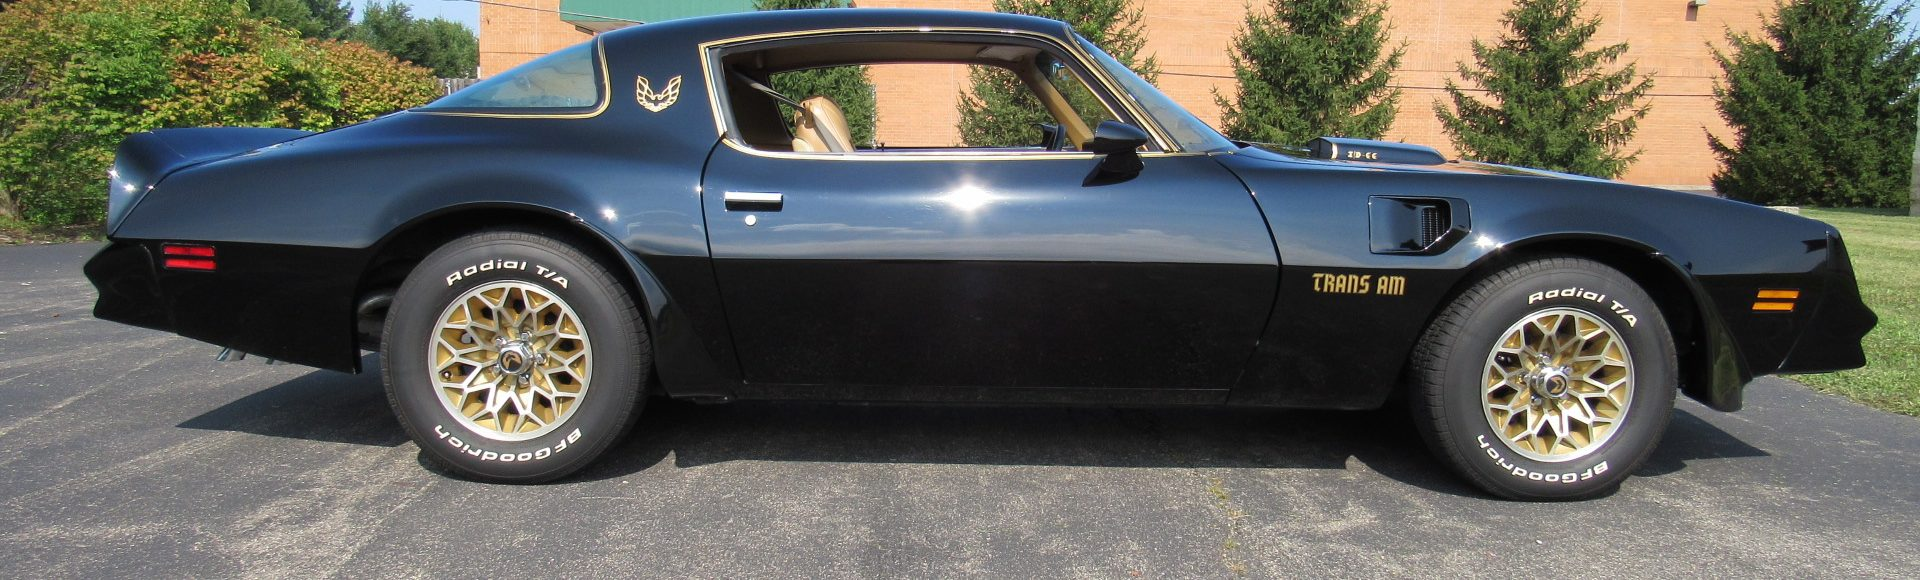 1977 Pontiac Trans Am, Restored, #'s Match, 25,900